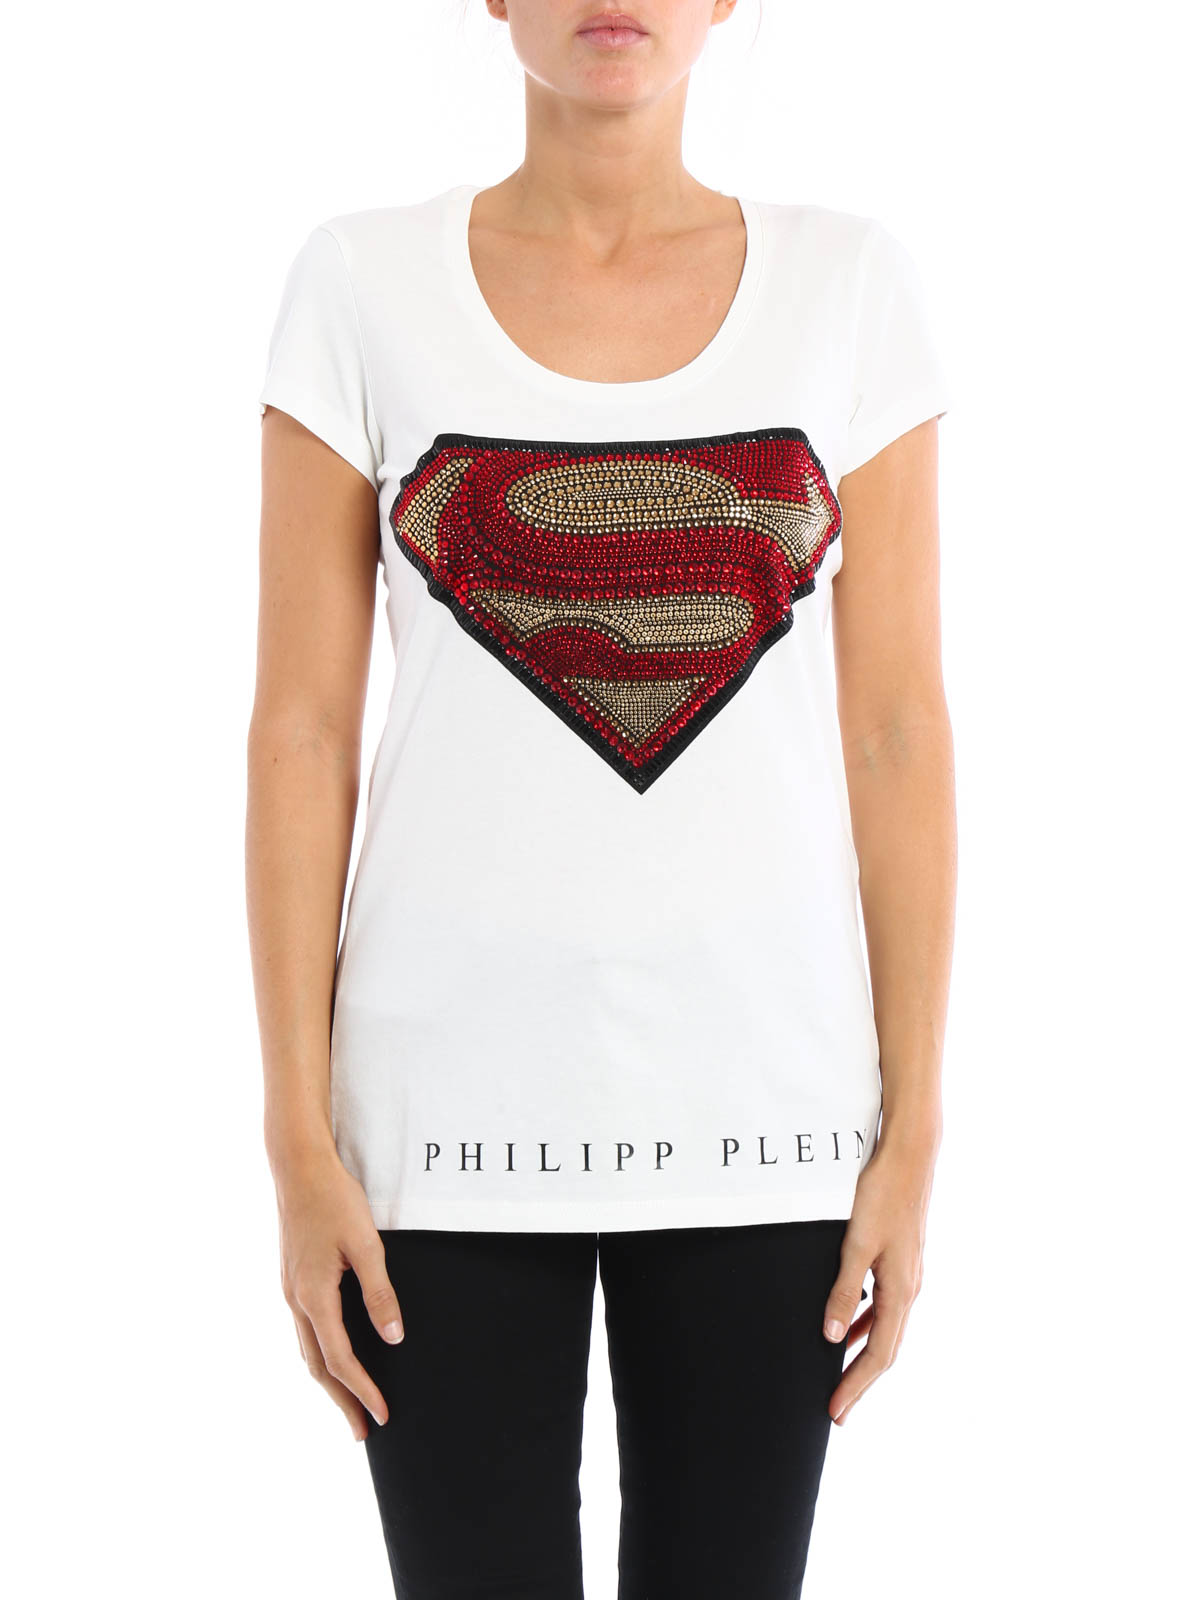 extra superman rhinestone logo tee by philipp plein t shirts ikrix. Black Bedroom Furniture Sets. Home Design Ideas